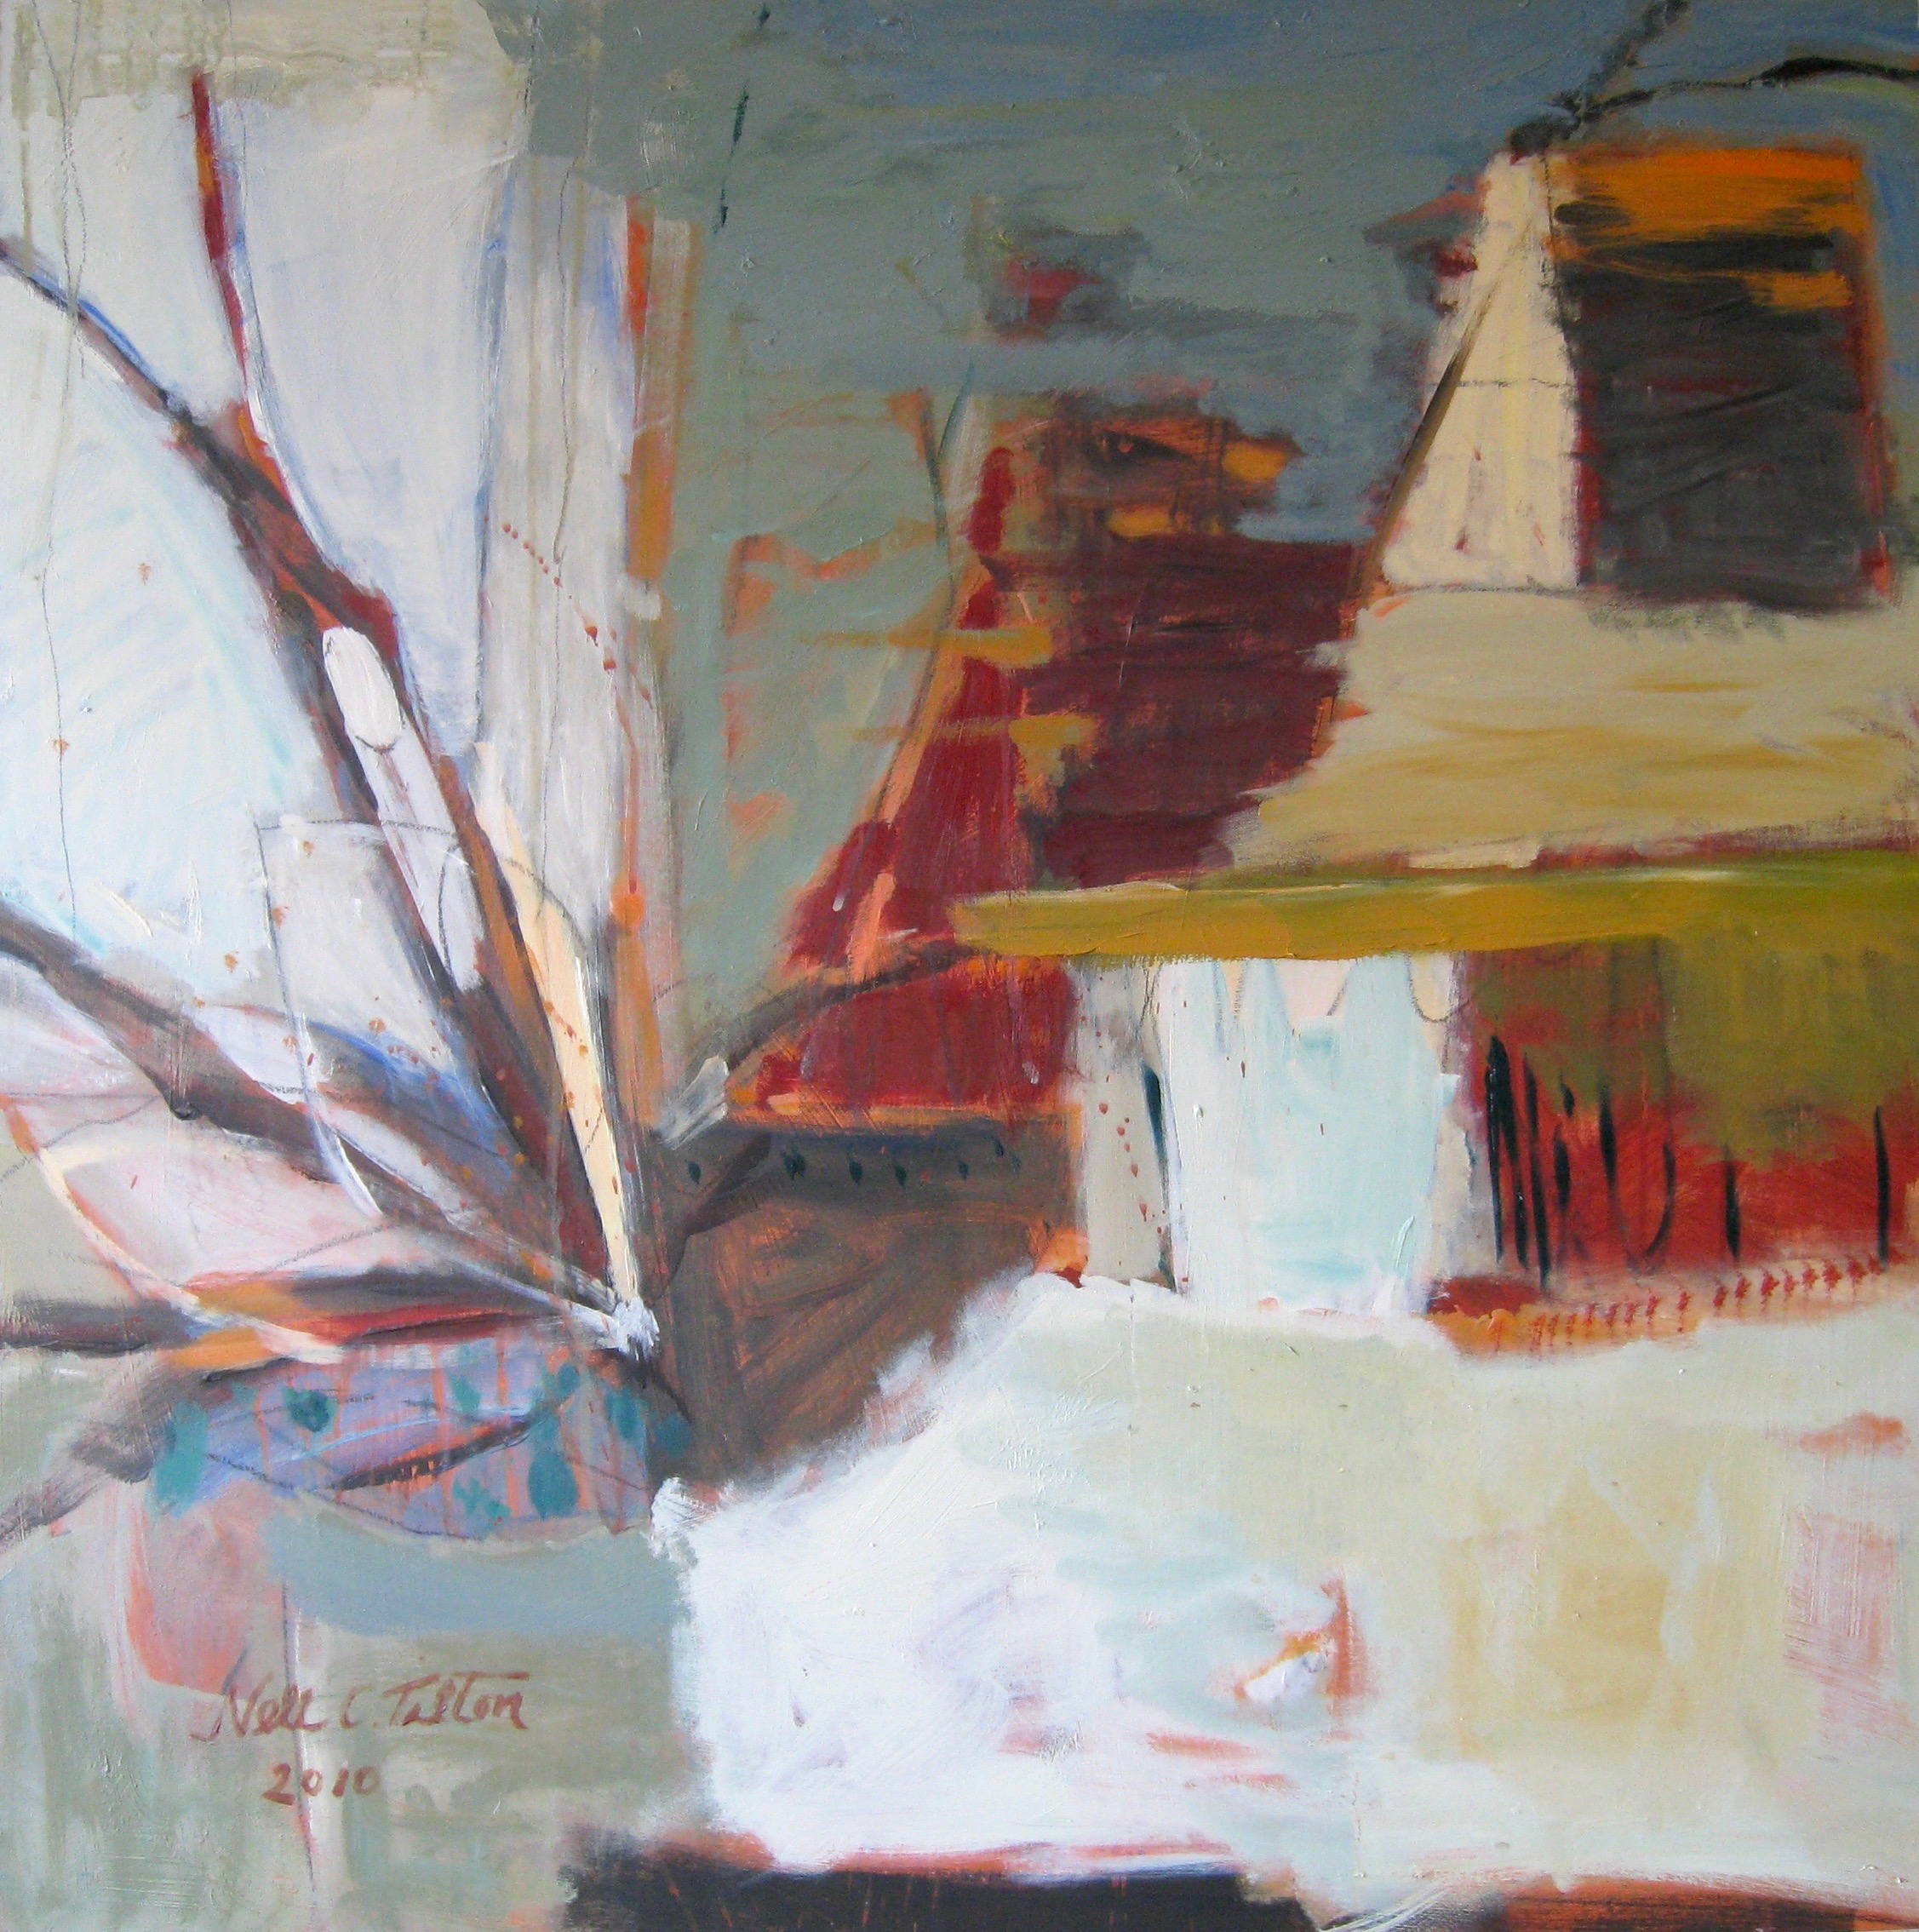 "Sold VILLAGE FLORAL 30"" x 30"" Acrylic/Mixed Media on Board"